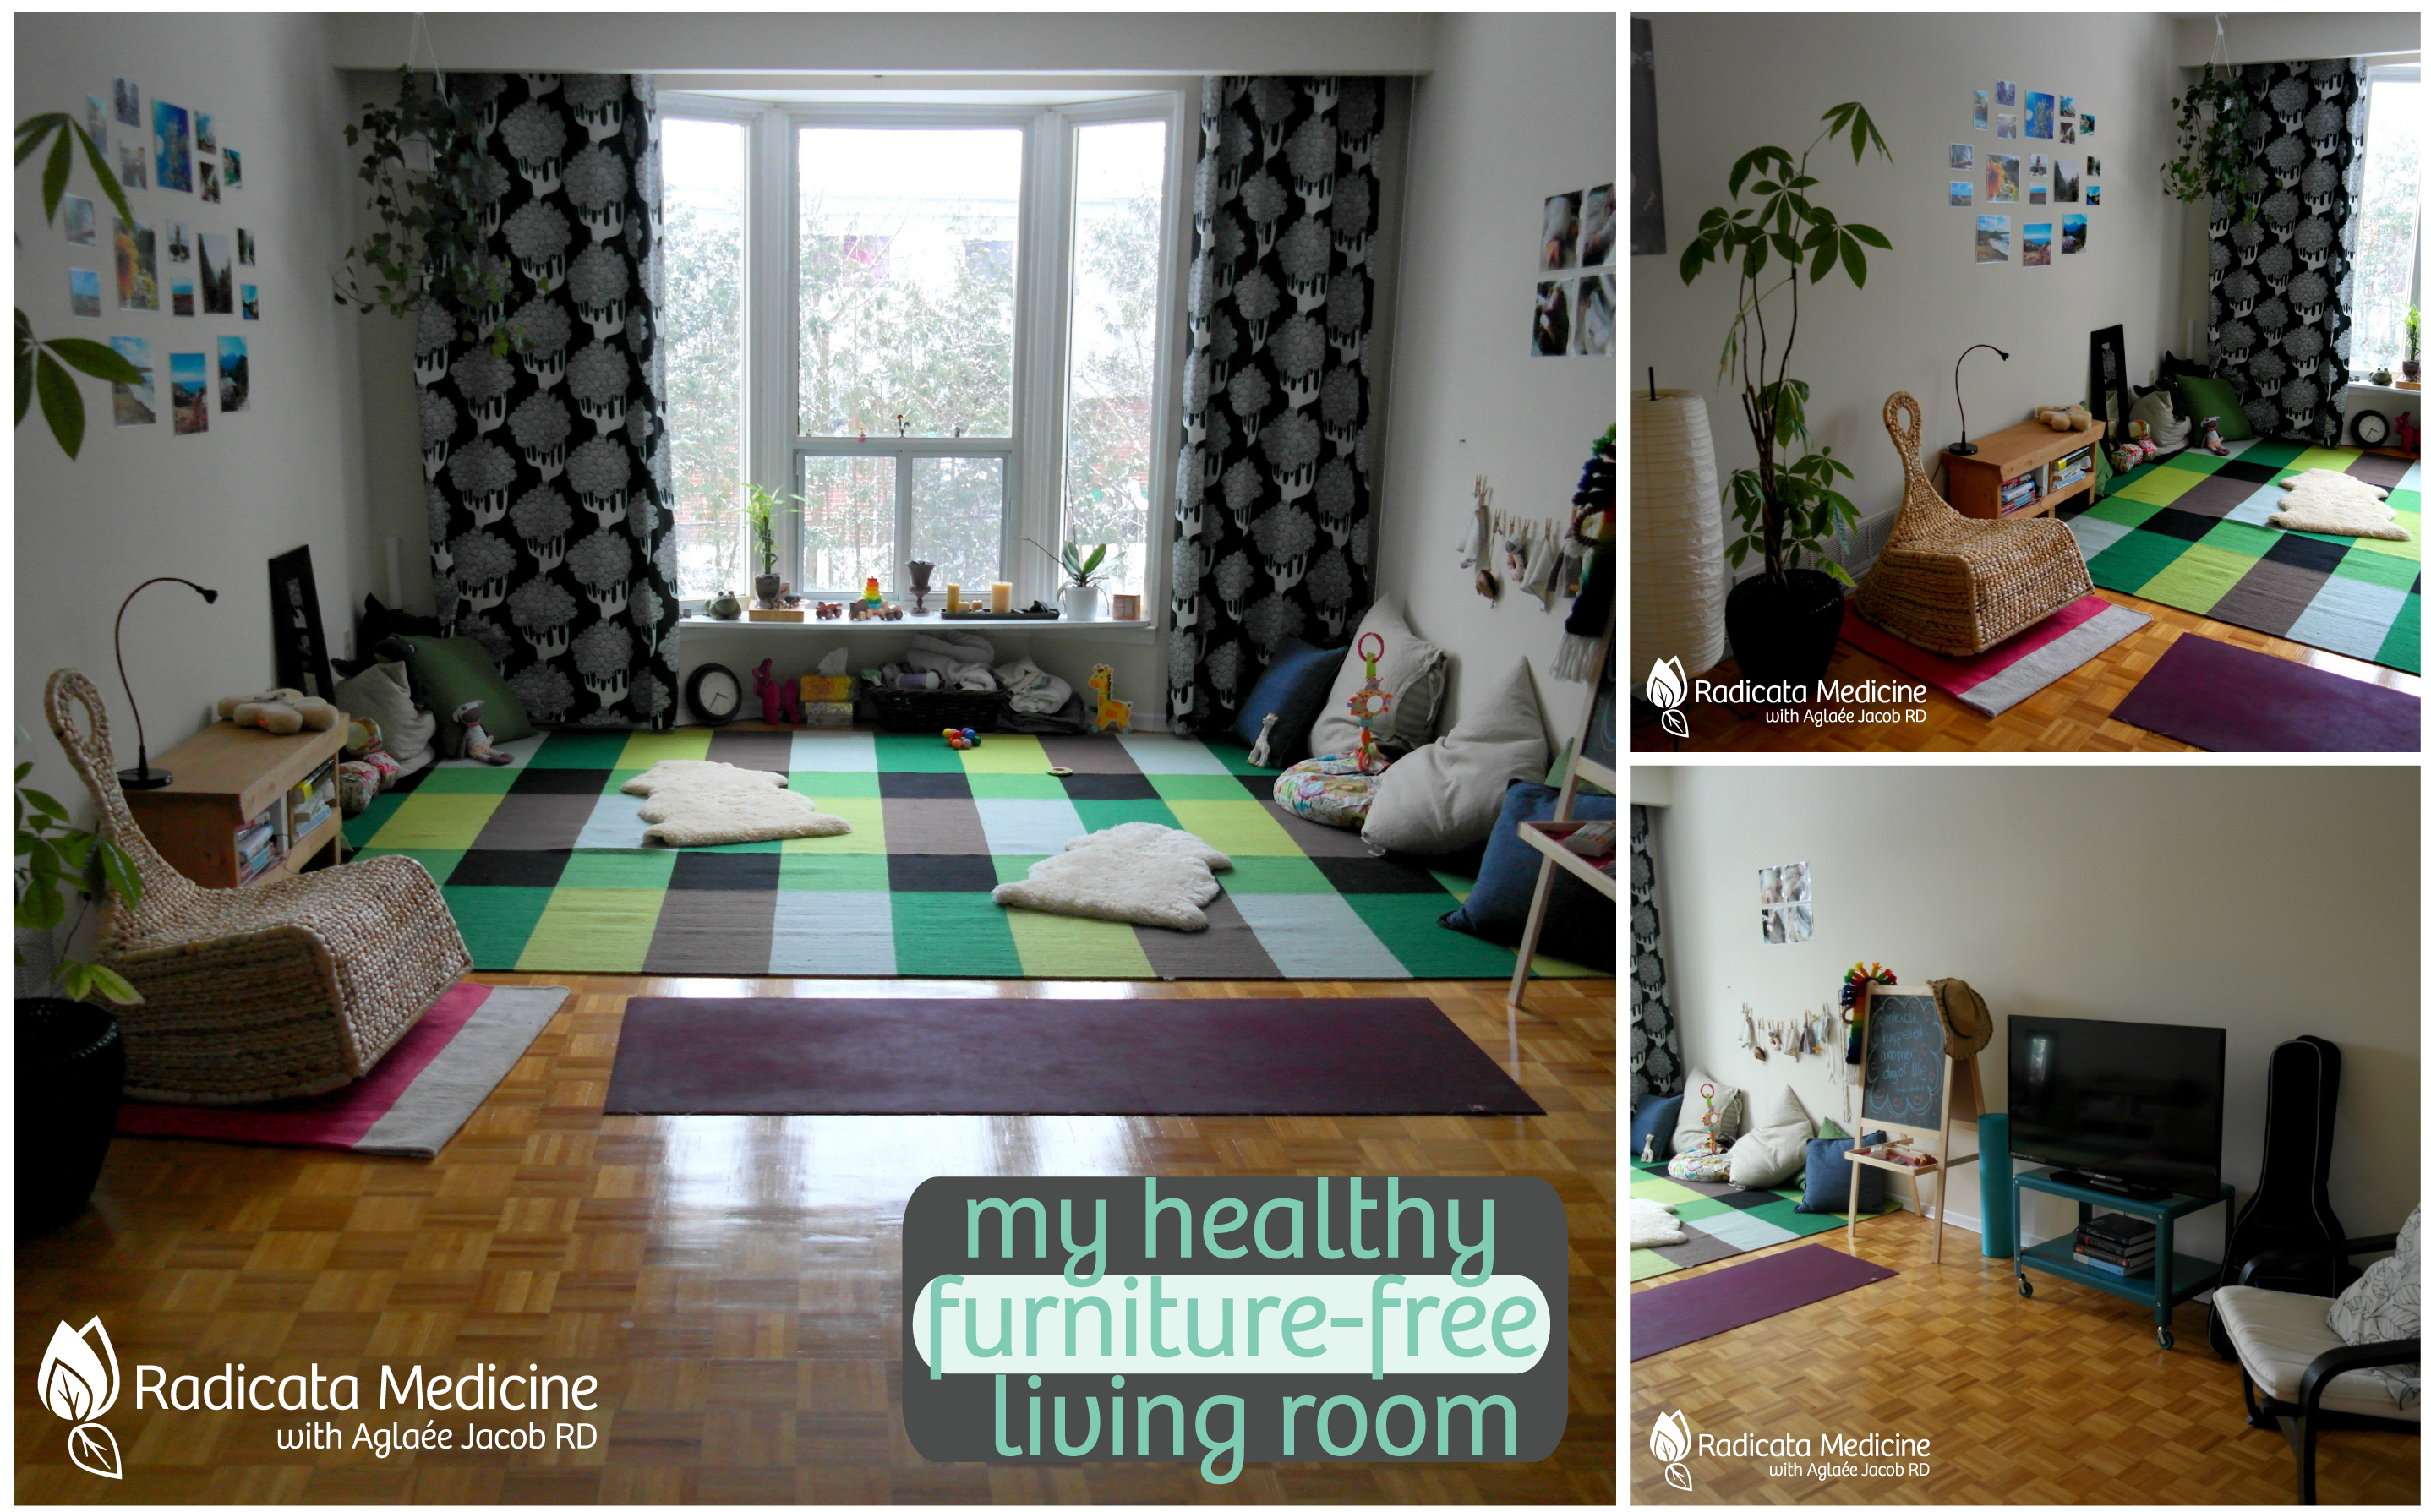 My healthy furniturefree living room yes a living room